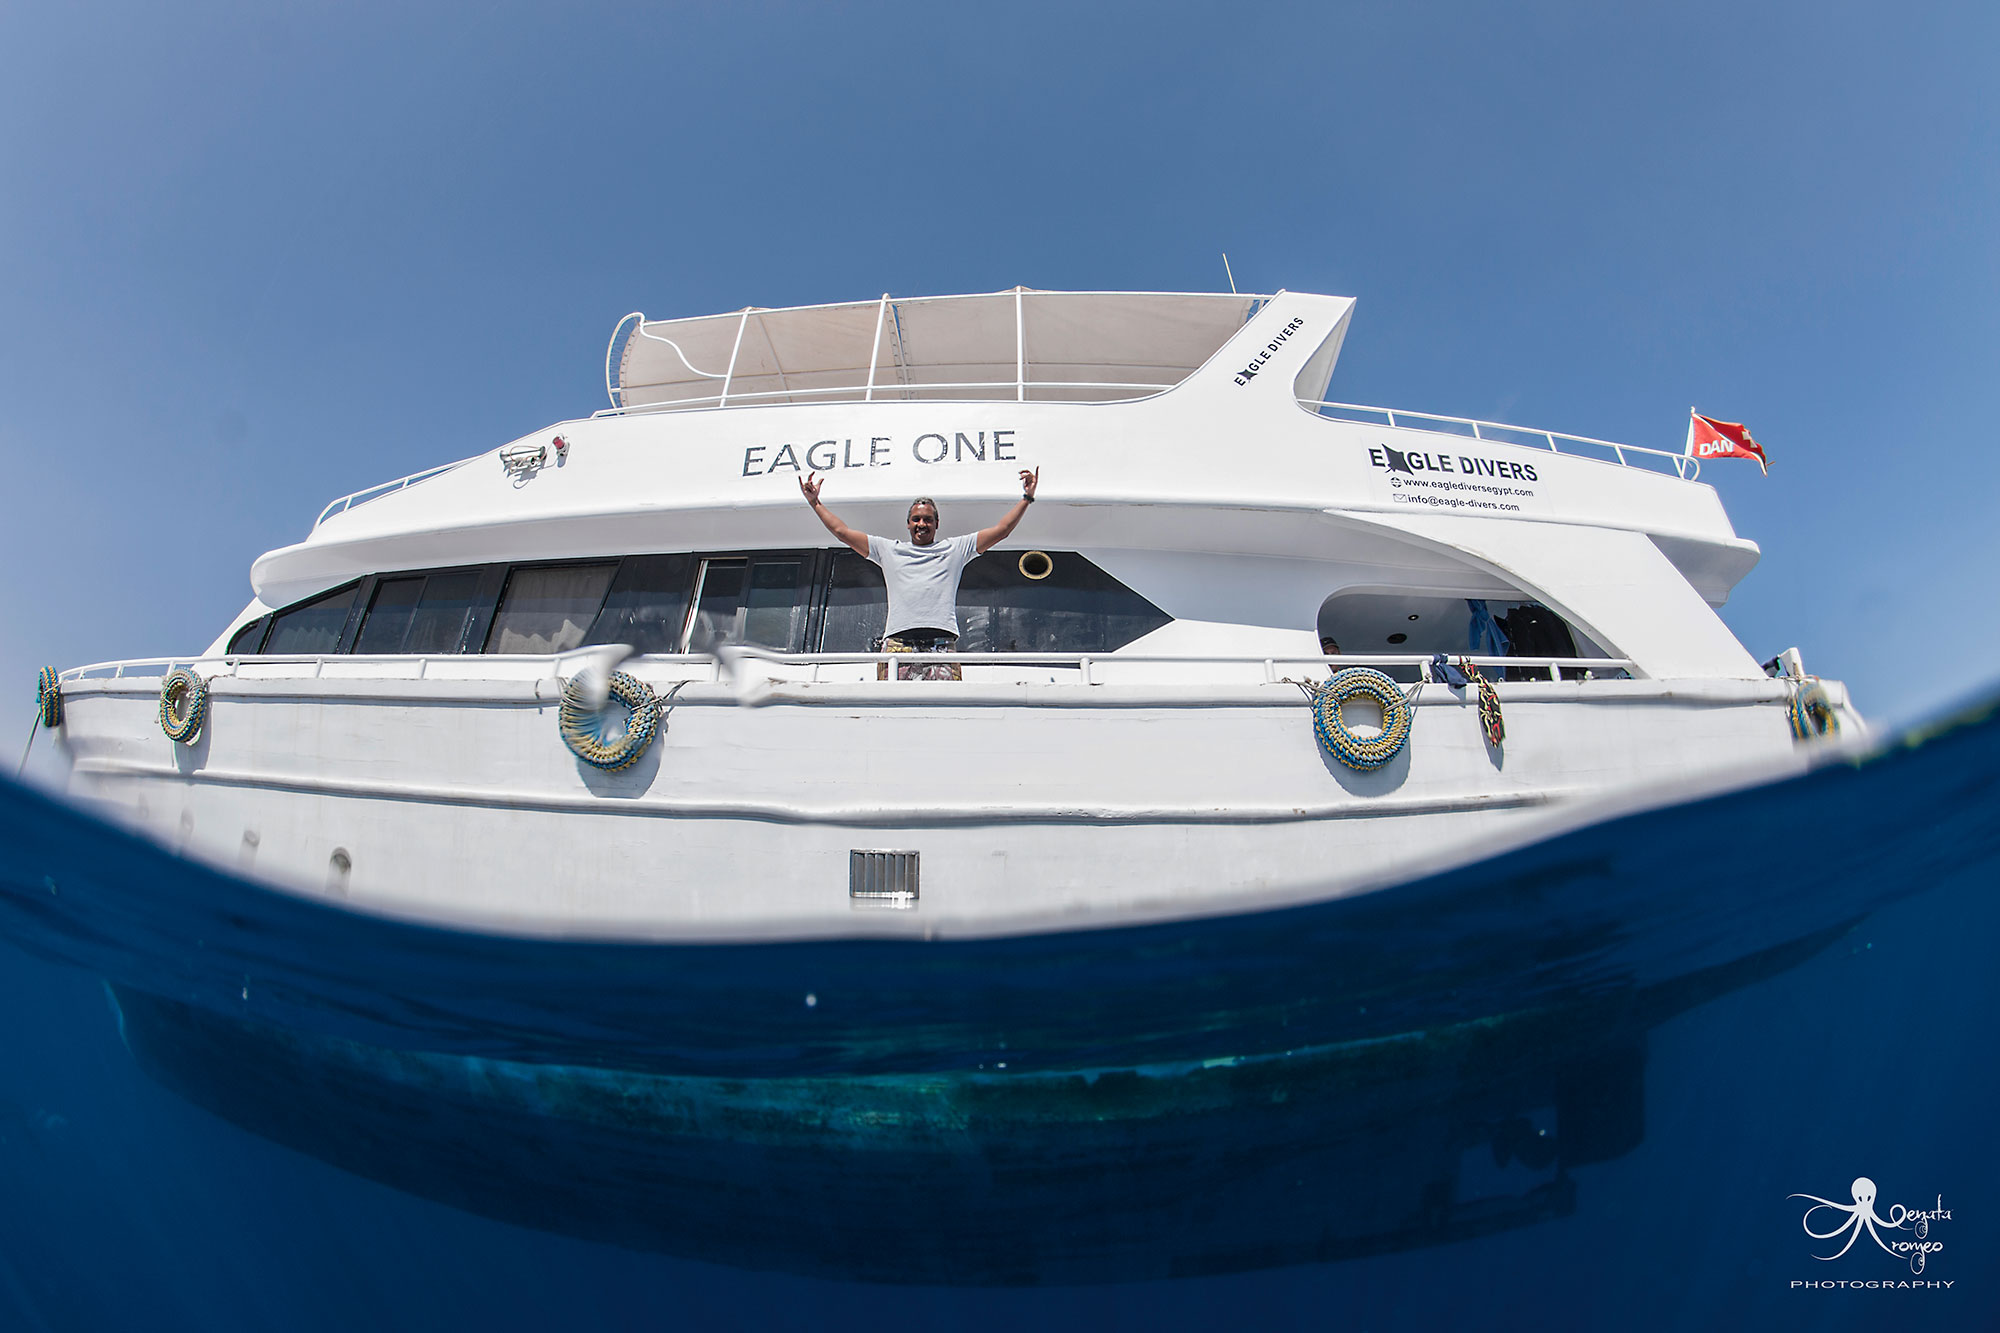 EAGLE ONE DIVE BOAT